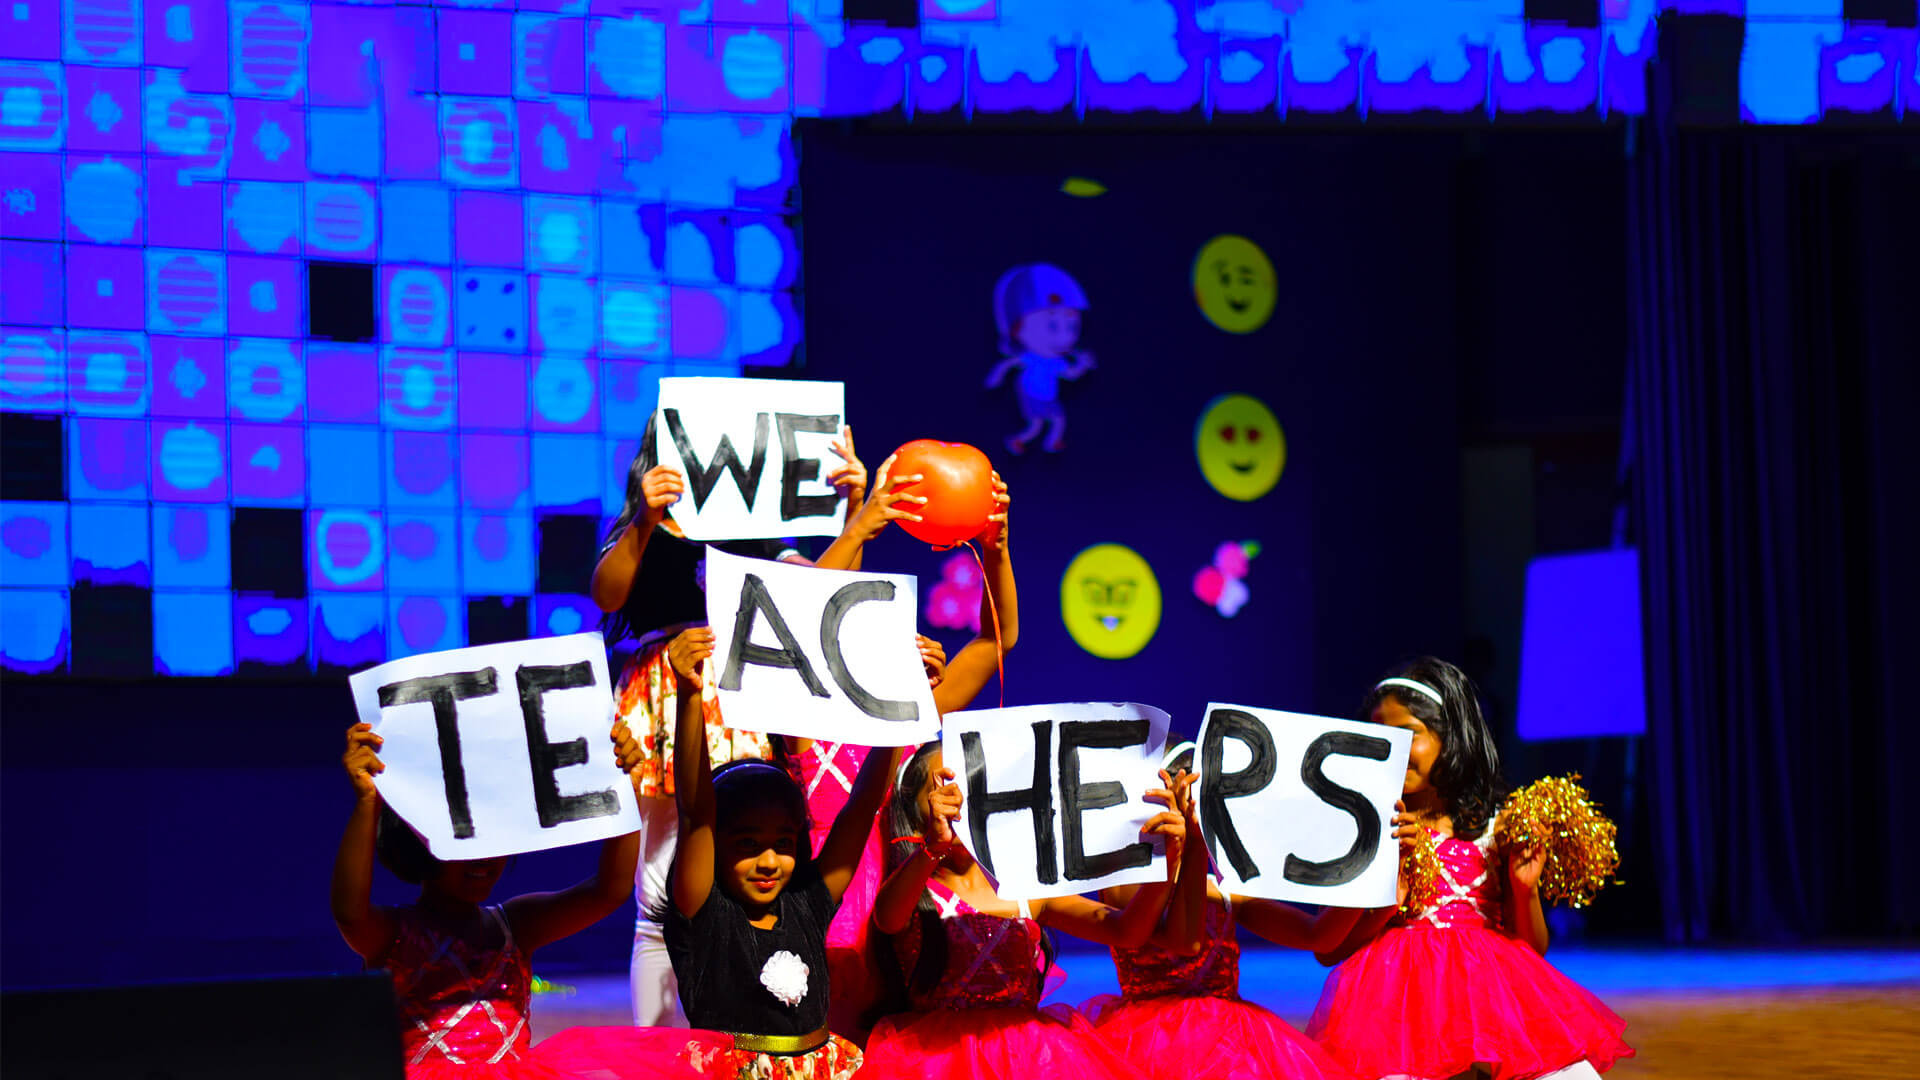 Teachers_day_Attractions